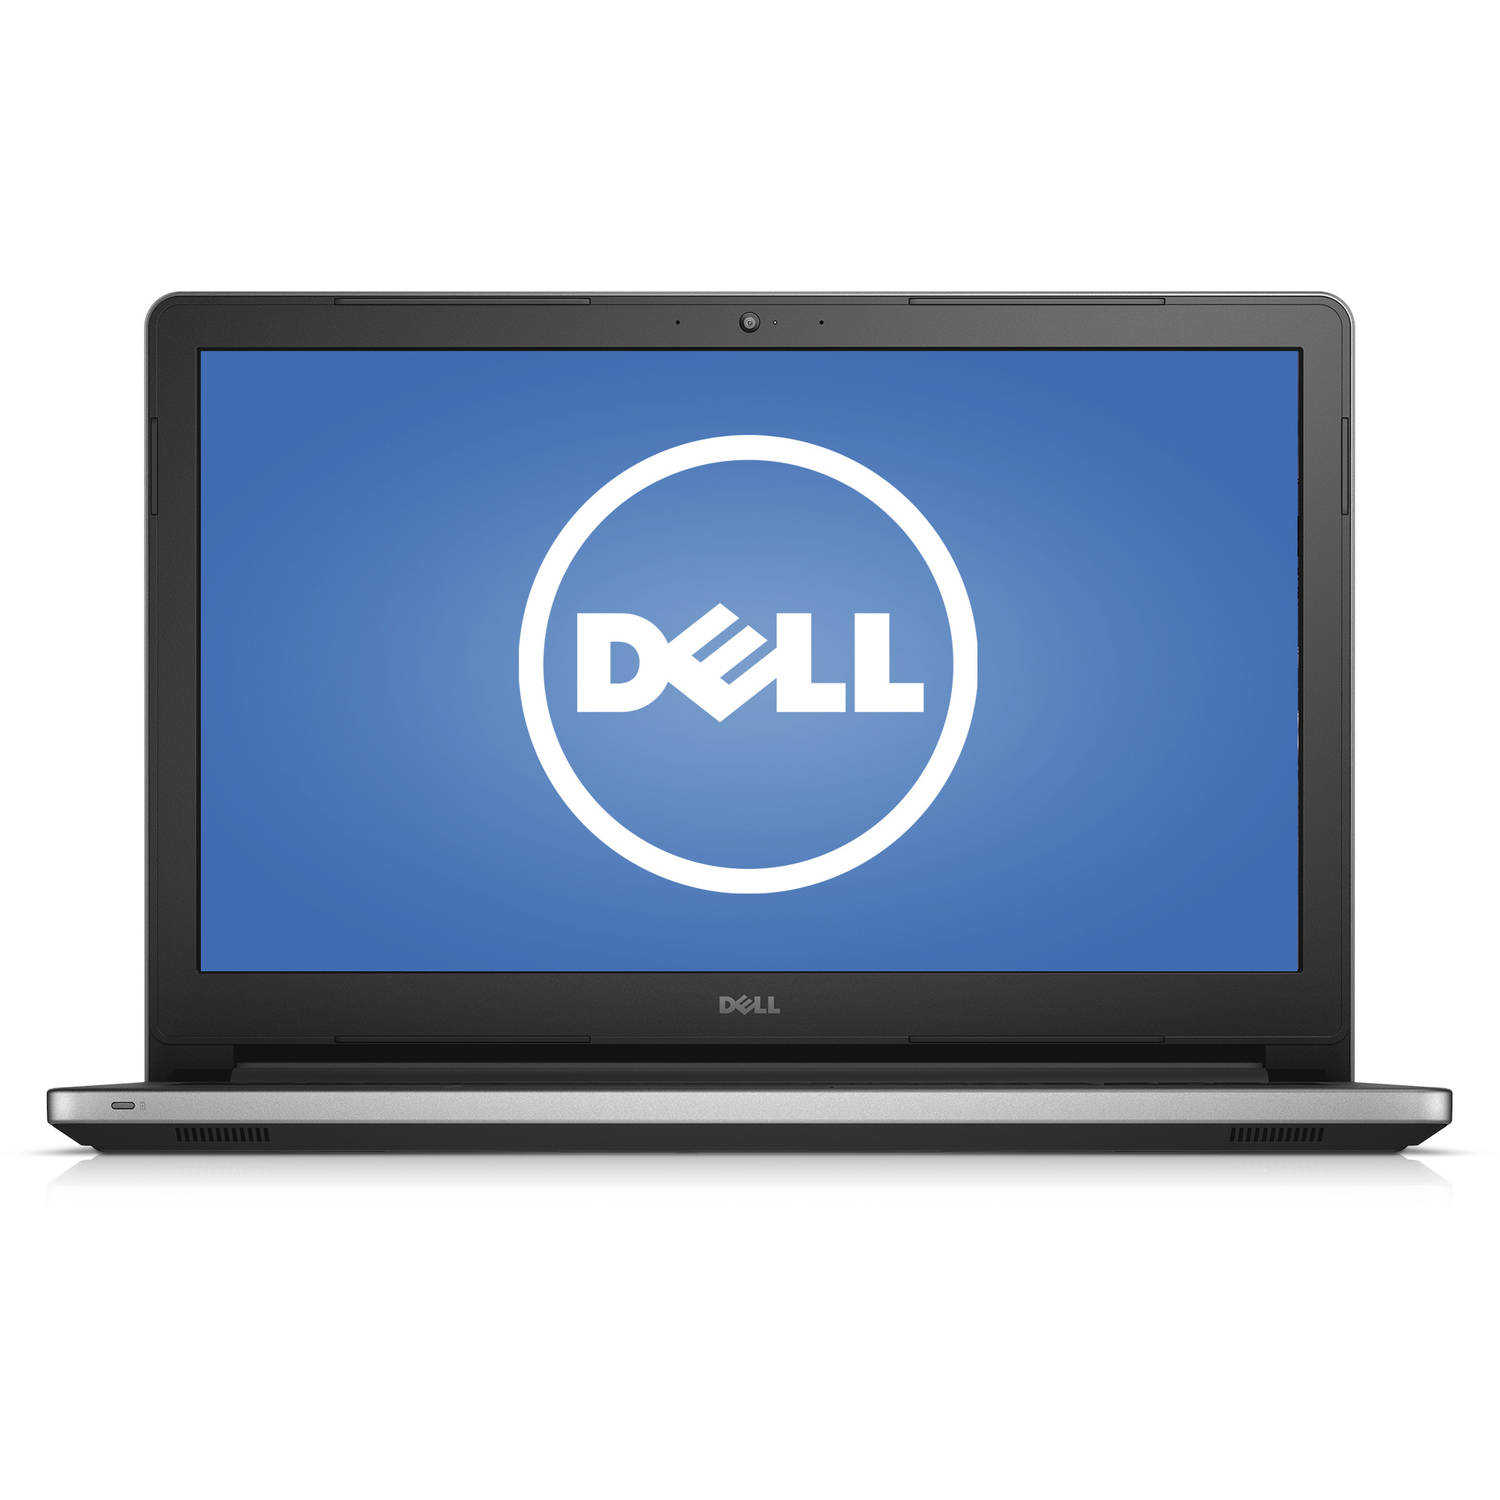 "Refurbished Dell Inspiron i5555-2843SLV 15.6"" Laptop, Windows 10 Home, AMD A10-8700P Processor, 12GB RAM, 1TB Hard Drive"